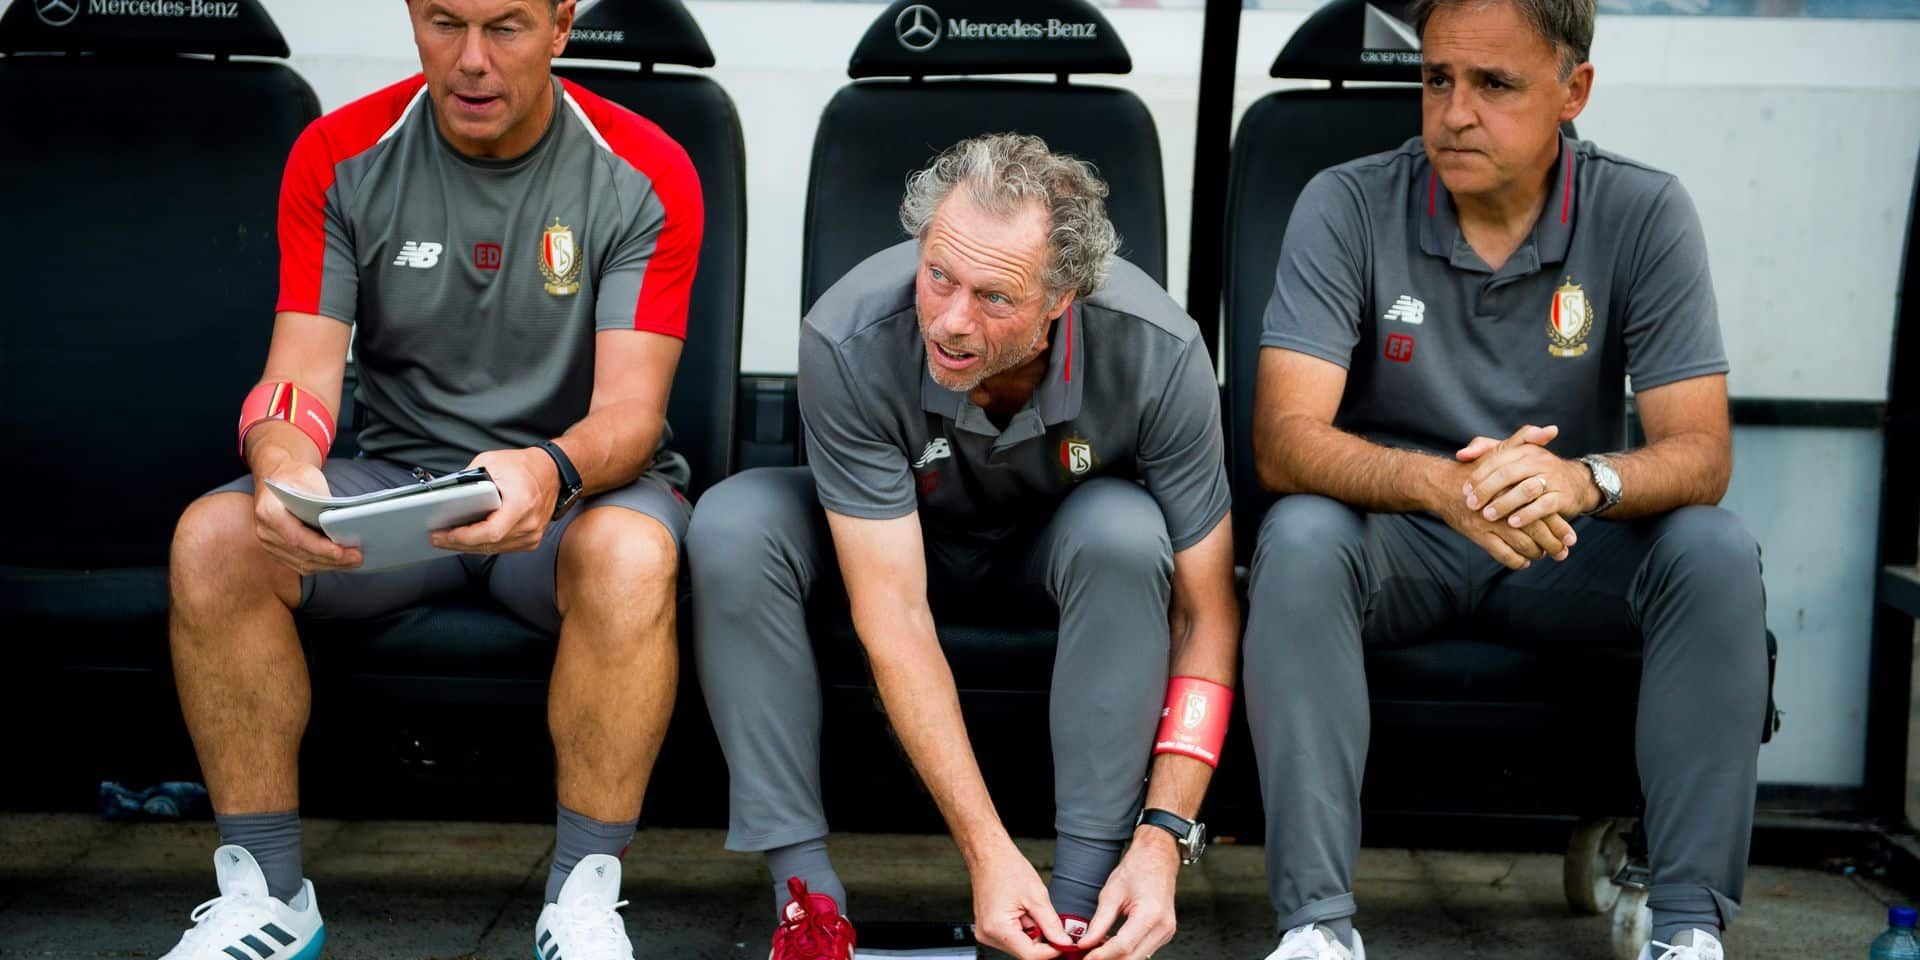 Standard's assistant coach Eric Deflandre, Standard's head coach Michel Preud'homme and Standard's assistant coach Emilio Ferrera pictured during a soccer game between Club Brugge and Standard de Liege, the supercup match between the respective champion of the Jupiler Pro League and the Belgian cup winner, Sunday 22 July 2018, in Brugge. BELGA PHOTO JASPER JACOBS